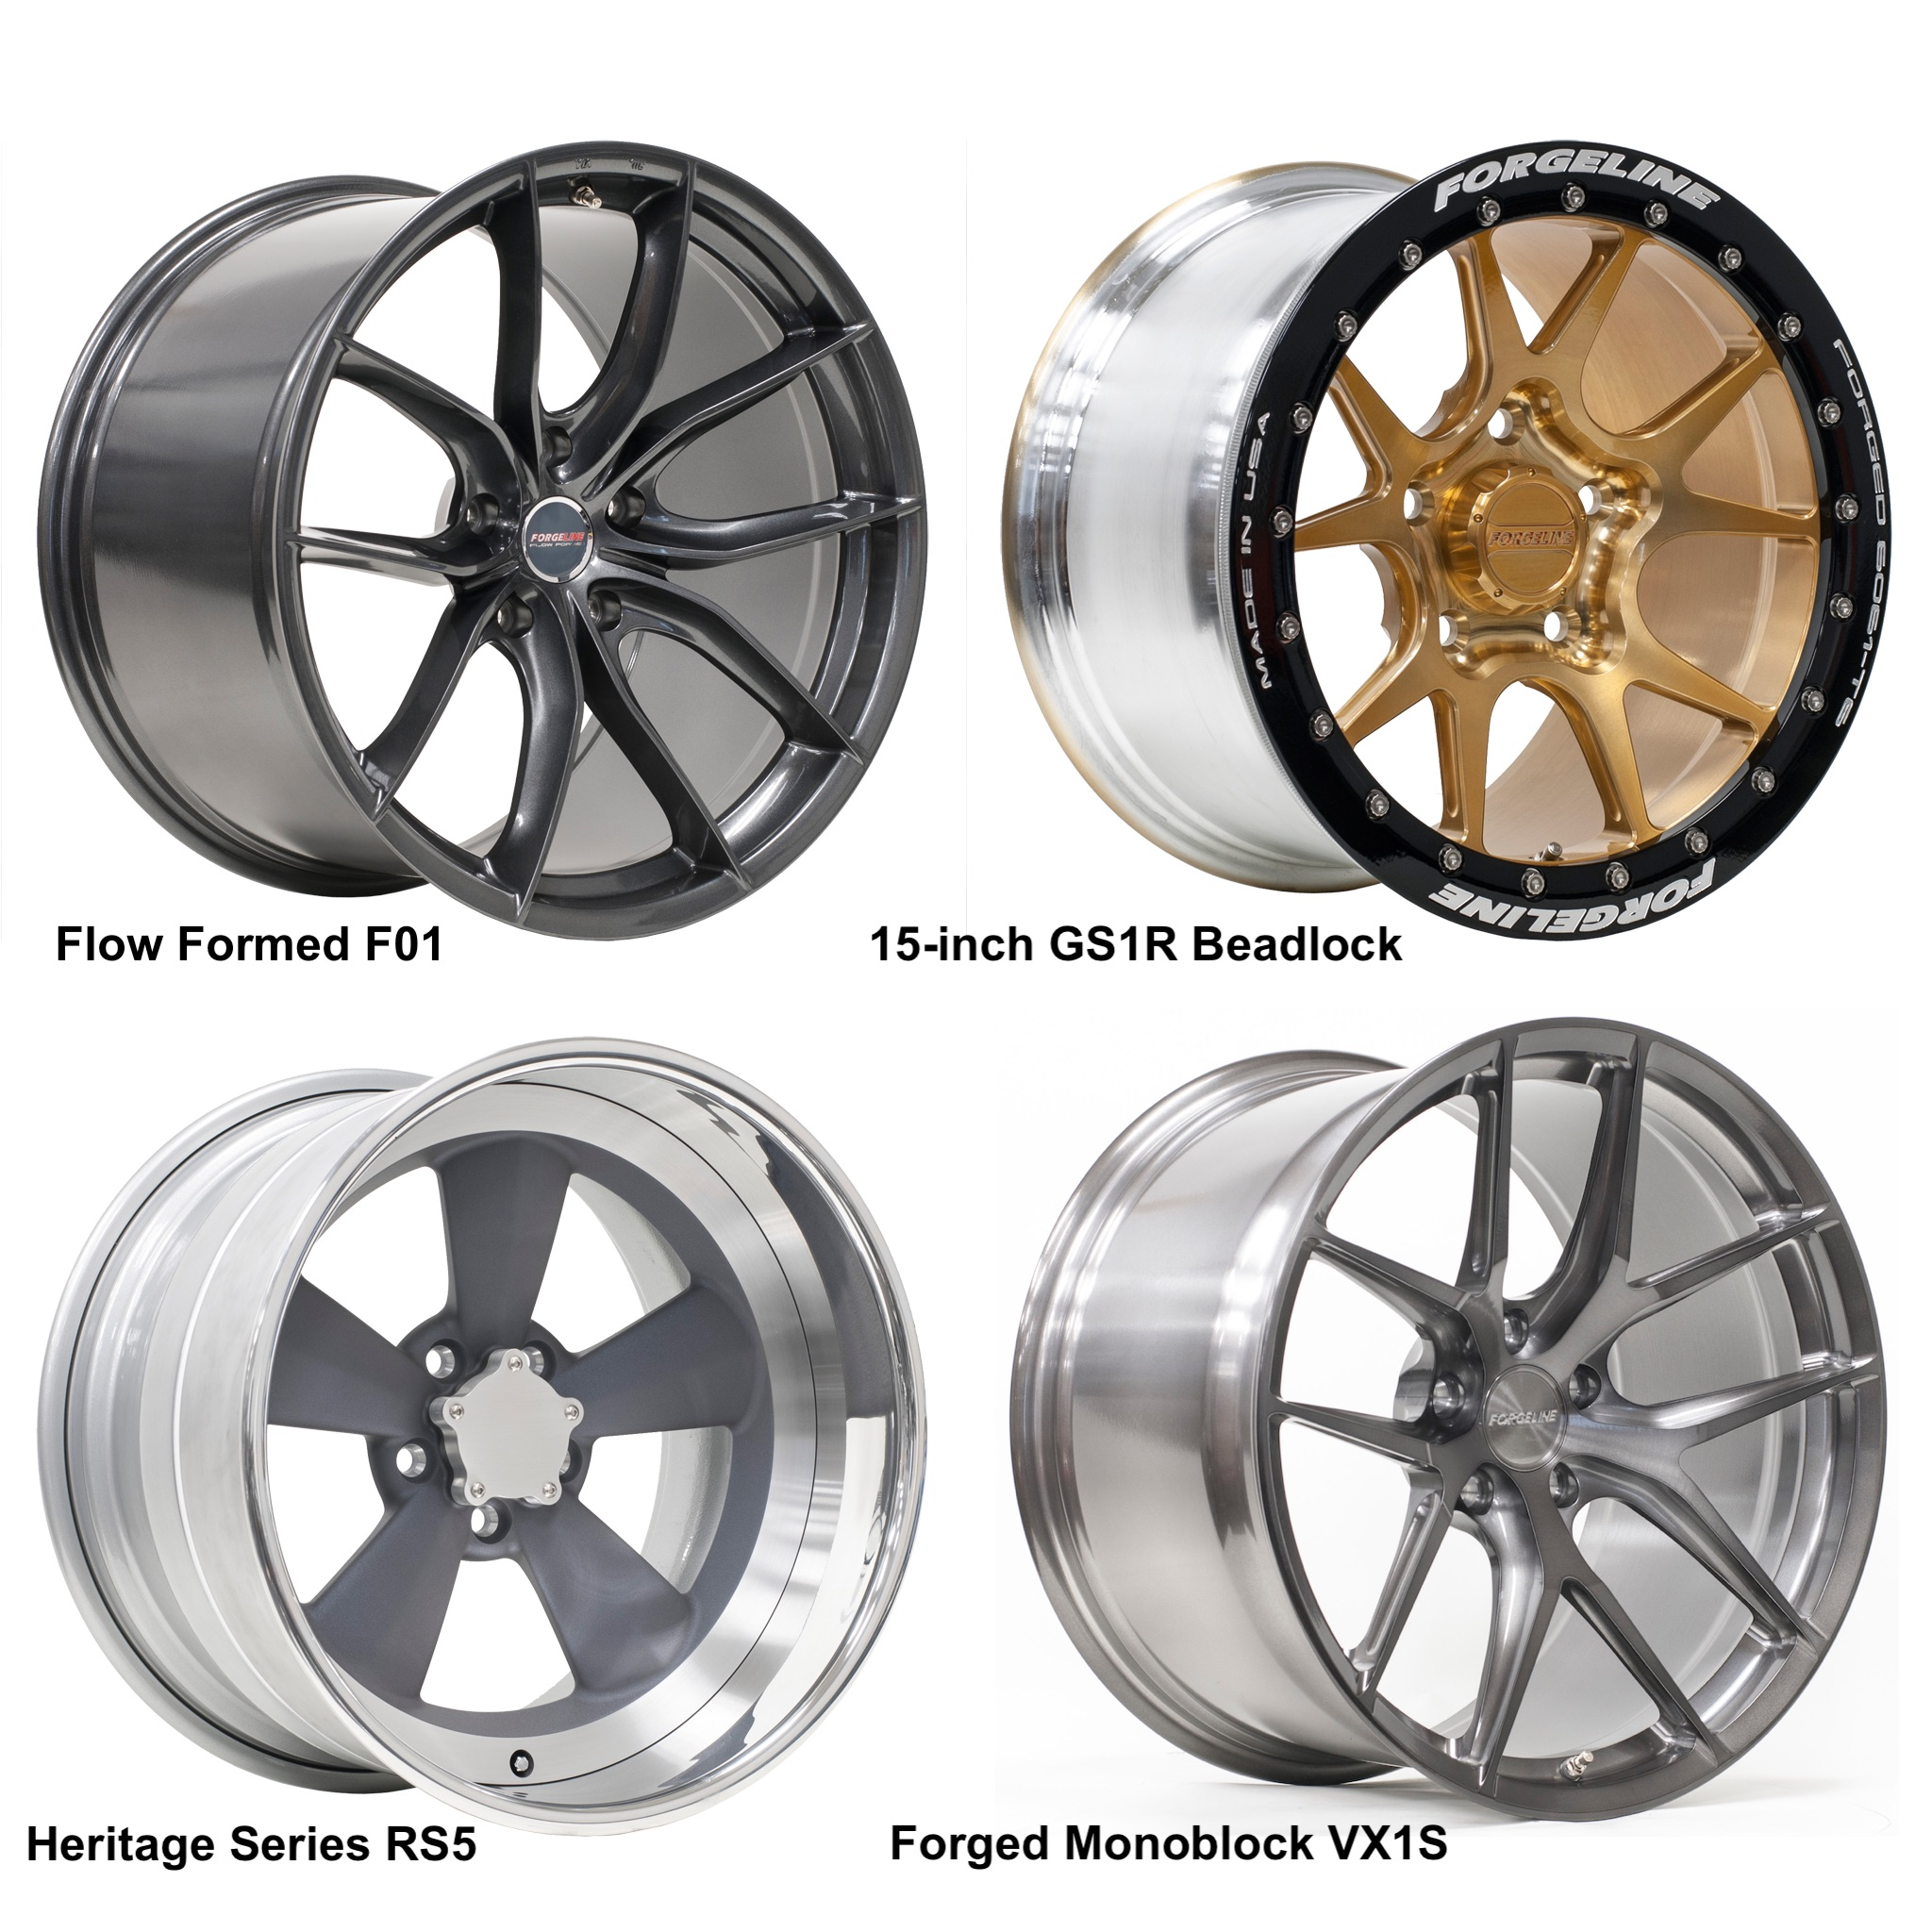 Forgeline F01, GS1R Beadlock, RS5, and VX1S Wheels